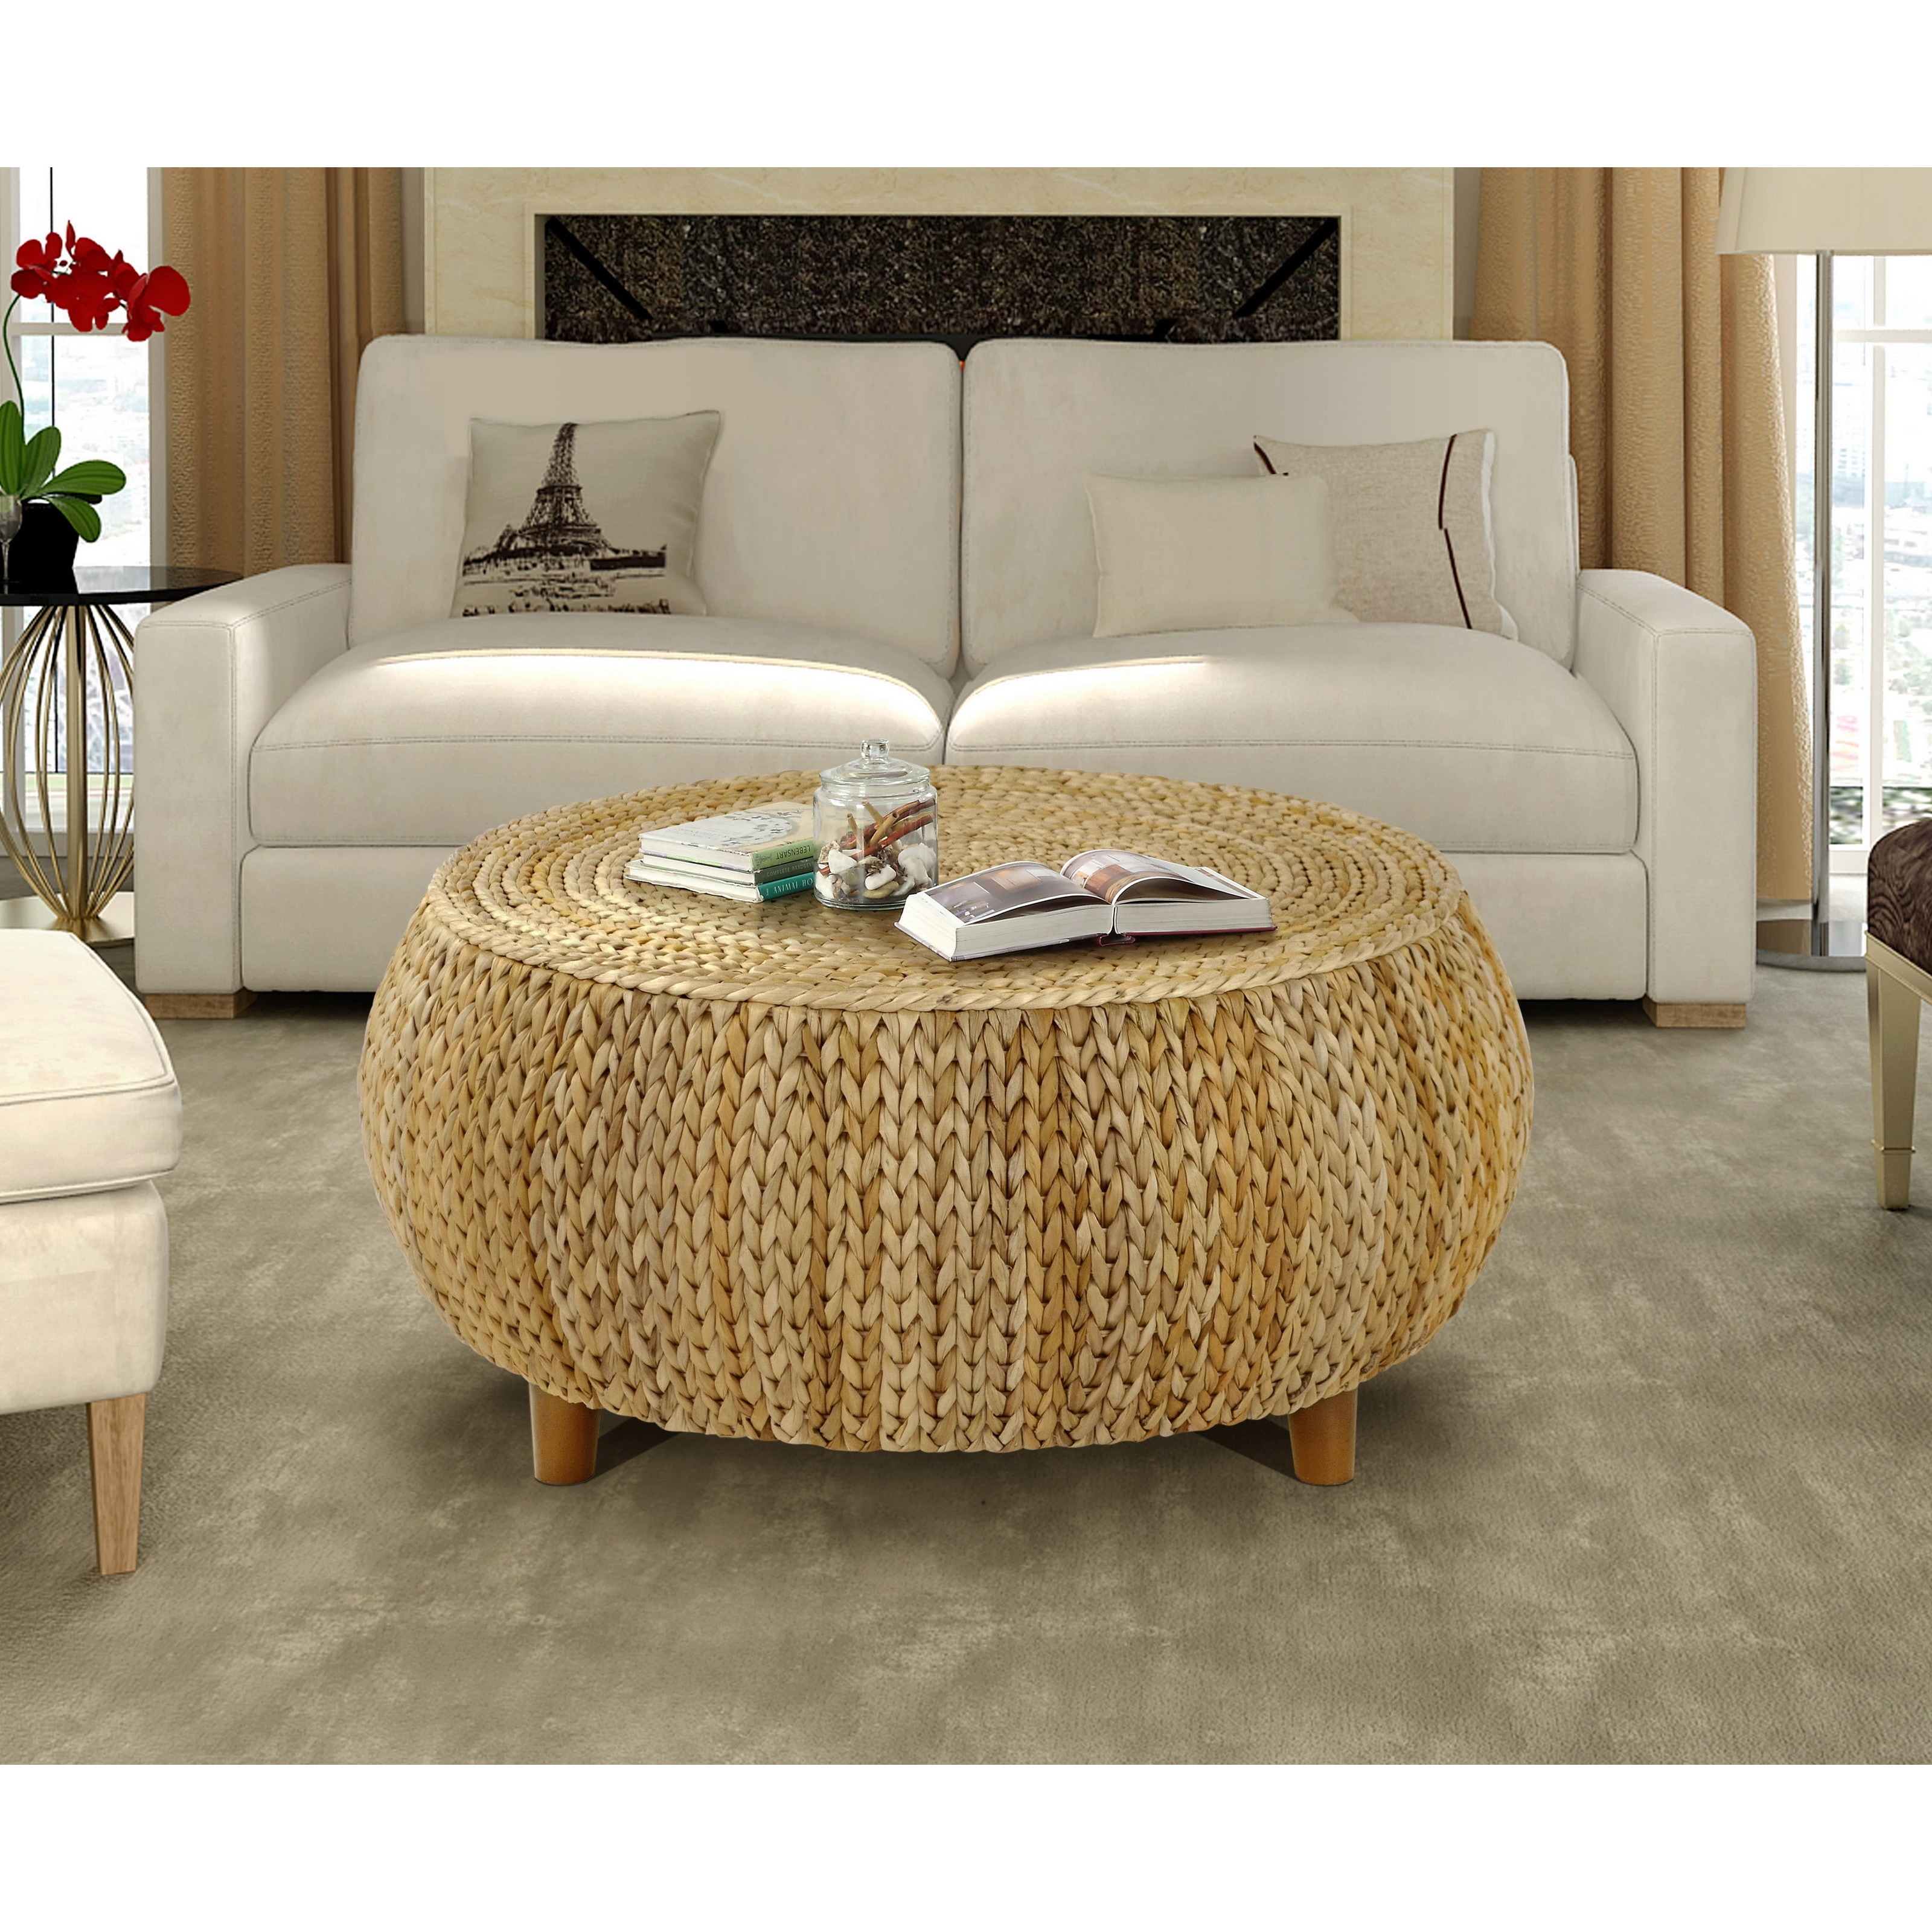 Preferred Havenside Home Eastport Low Round Coffee Table - Free Shipping  ZG21